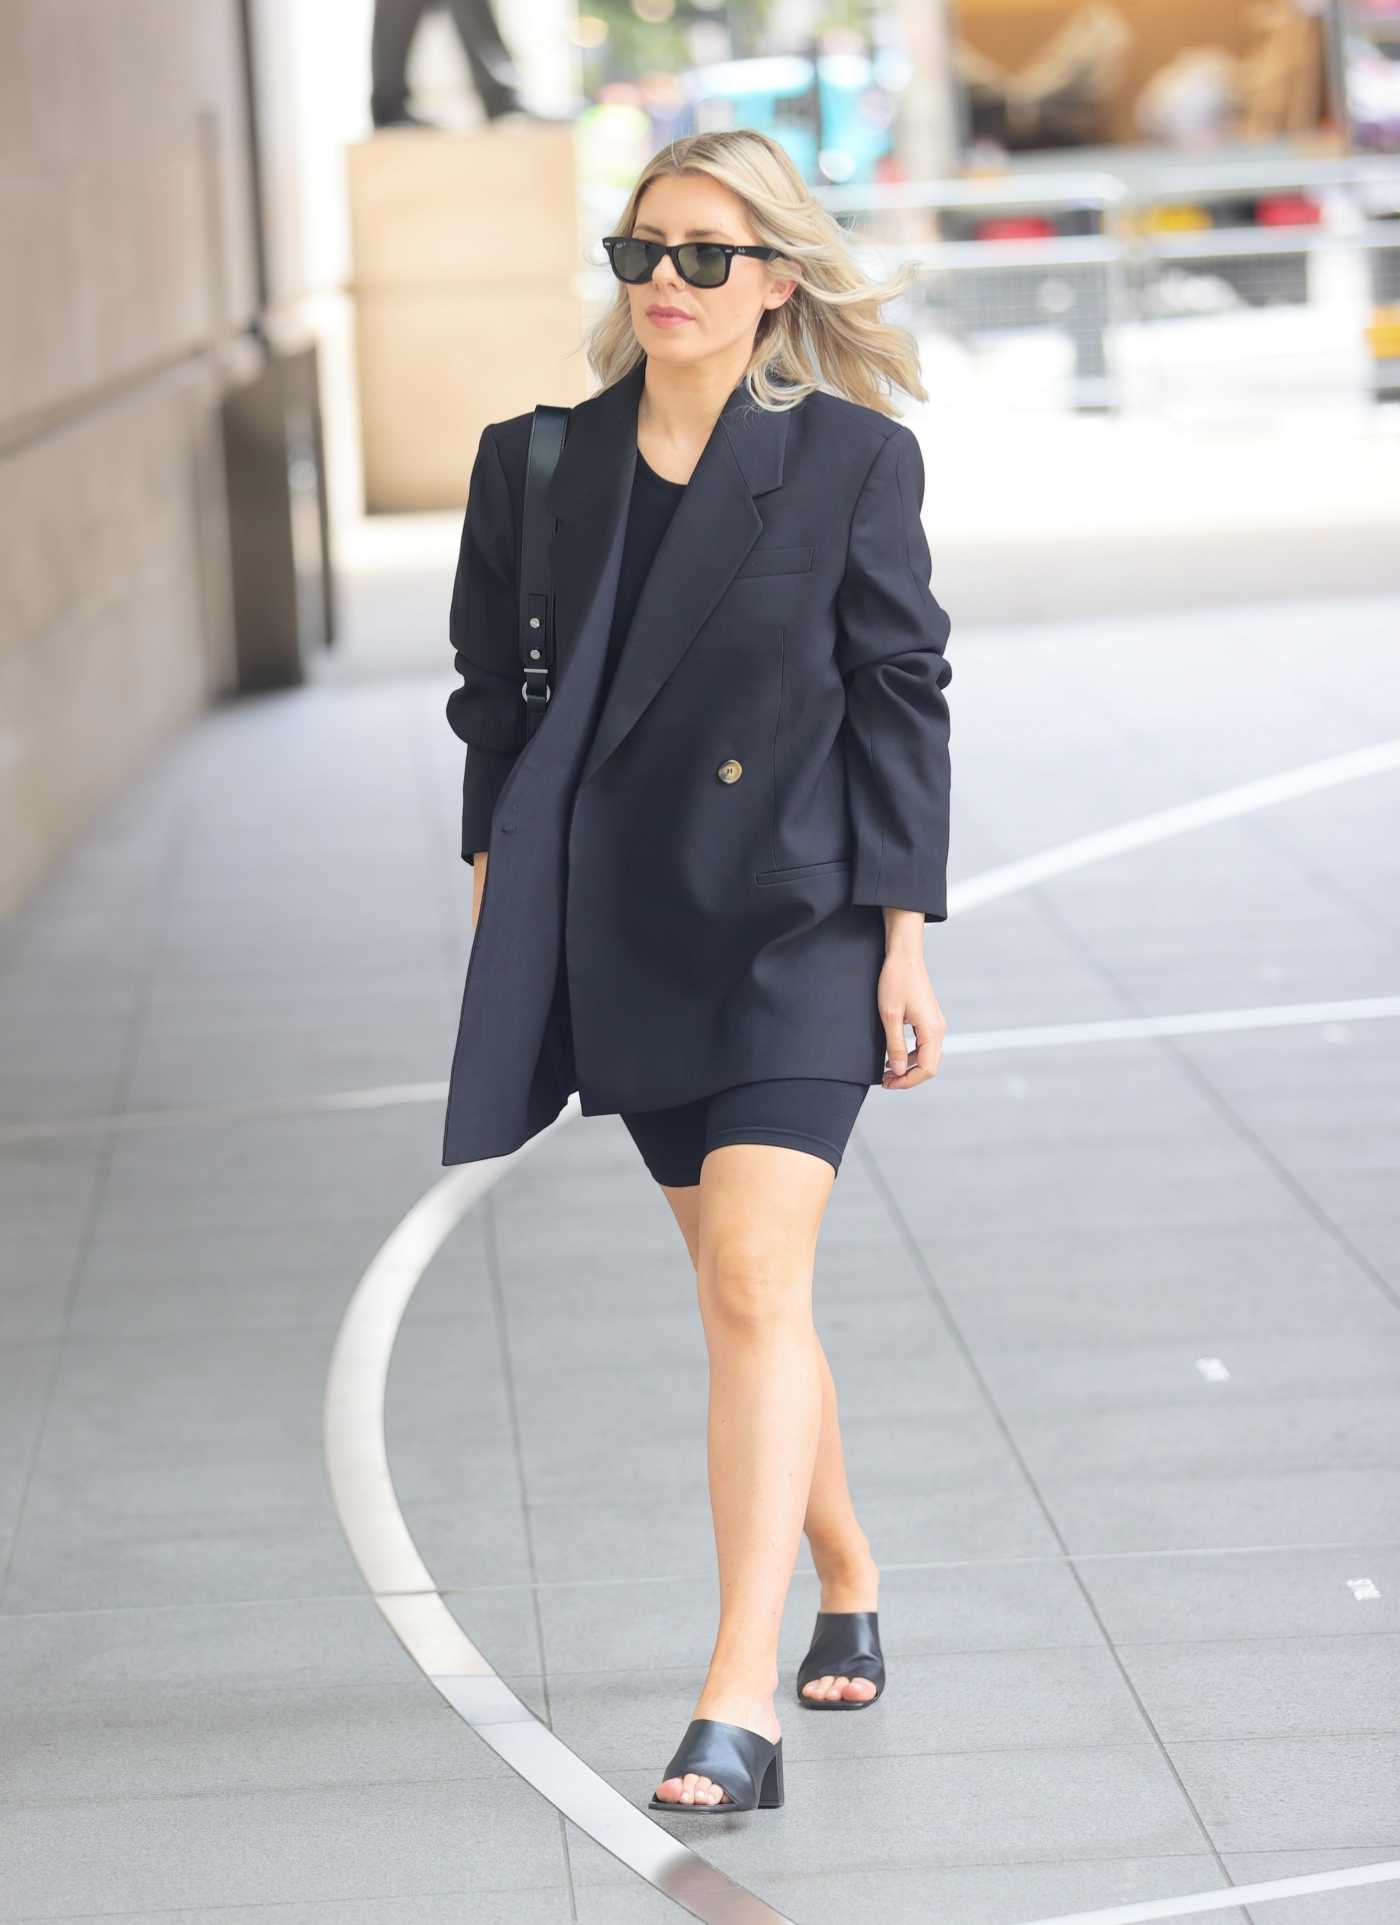 Mollie King in a Black Blazer Arrives at the BBC Radio One in London 06/11/2021